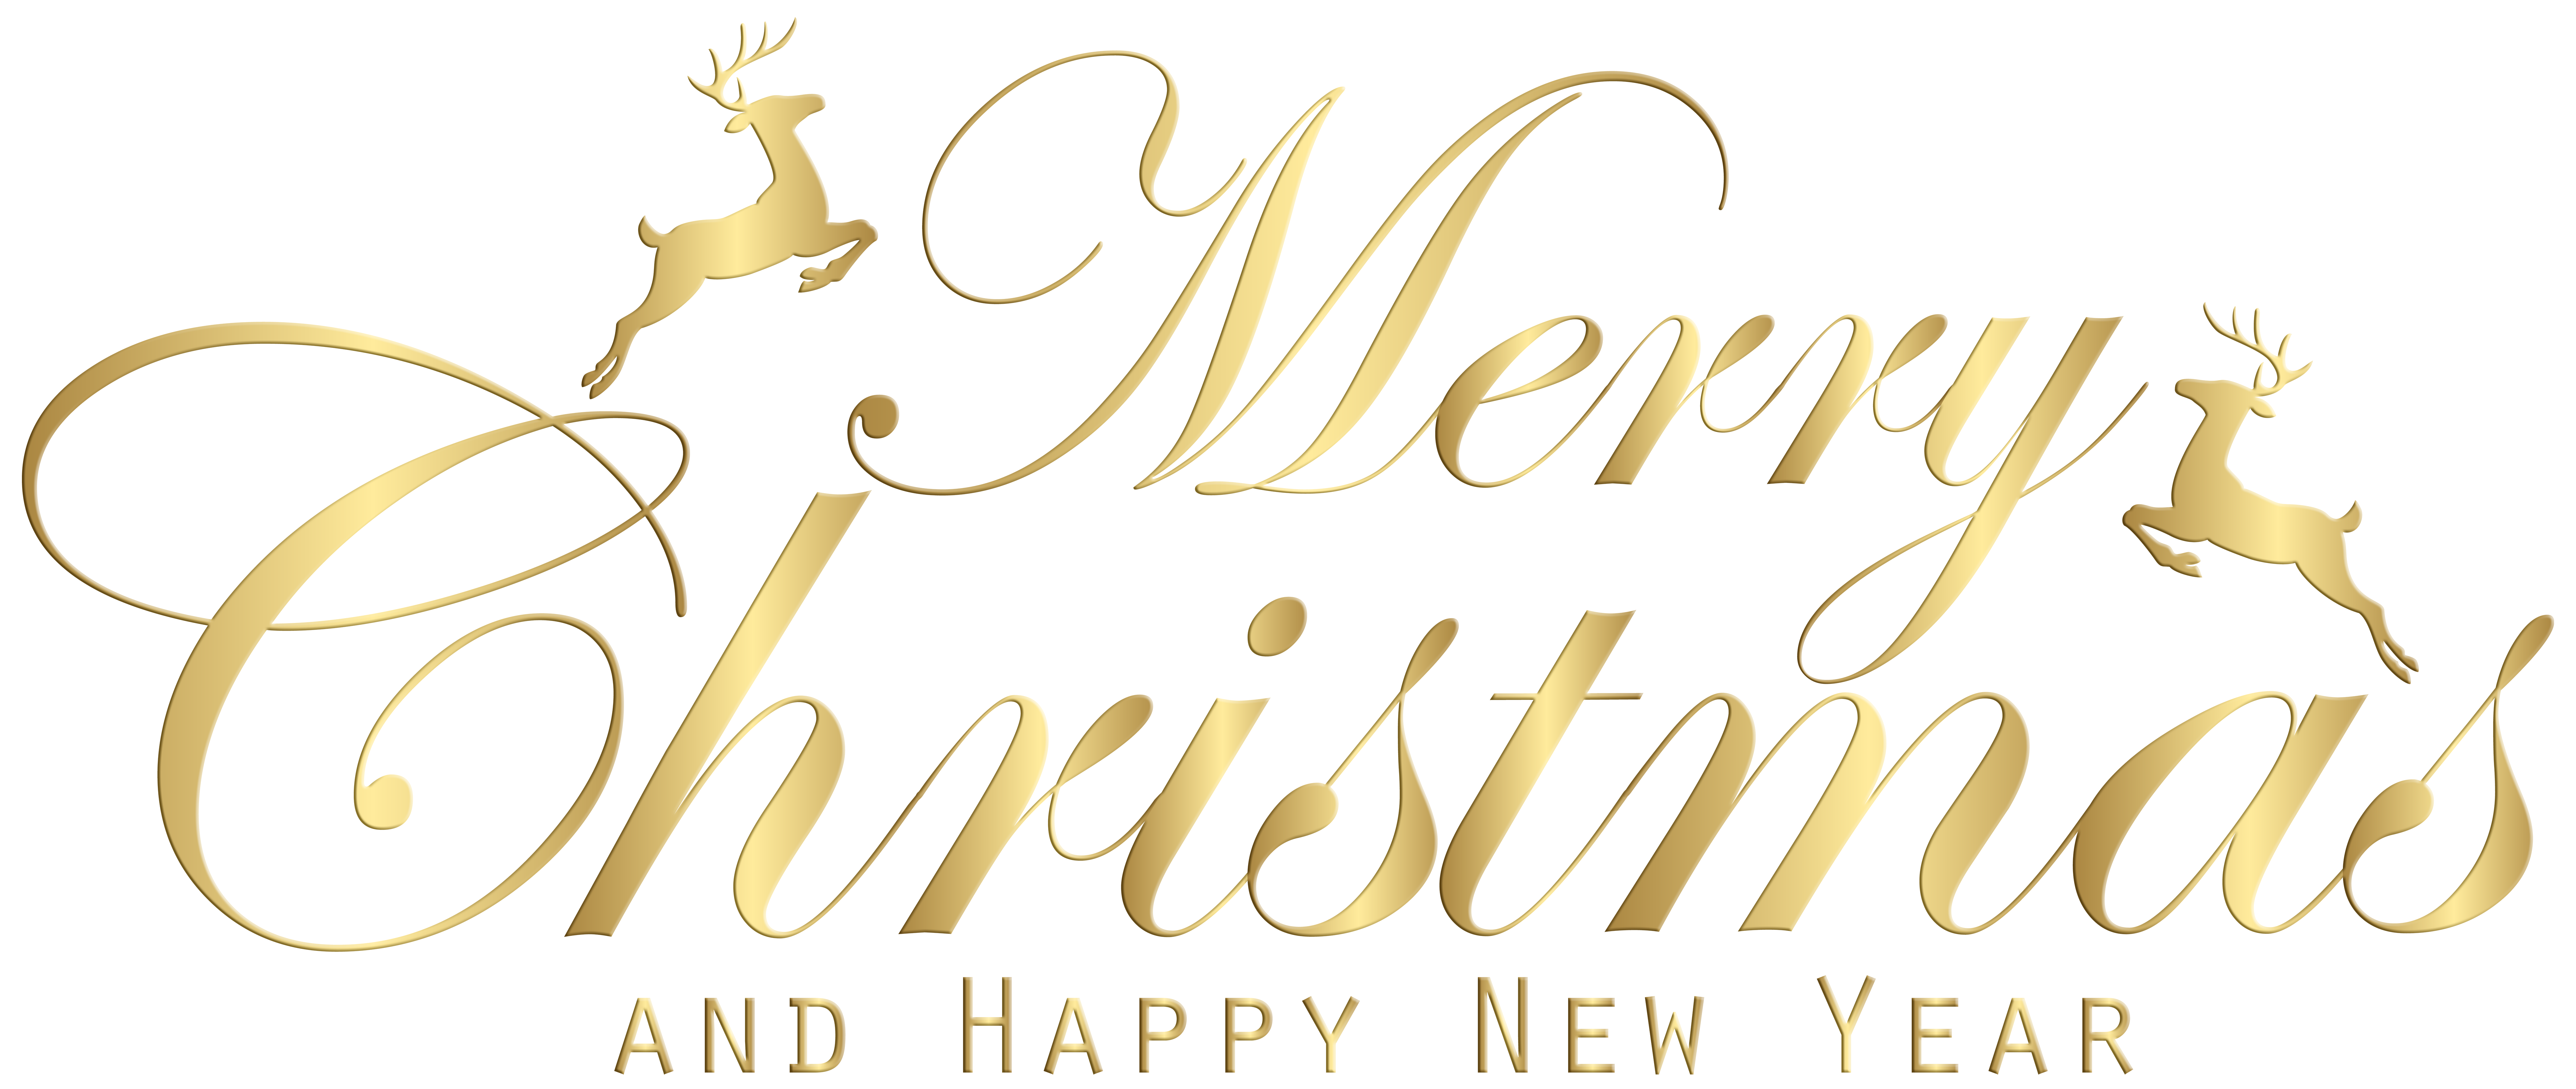 Merry christmas and happy new year clipart free banner freeuse Merry Christmas Gold Transparent Clip Art Image | Gallery ... banner freeuse